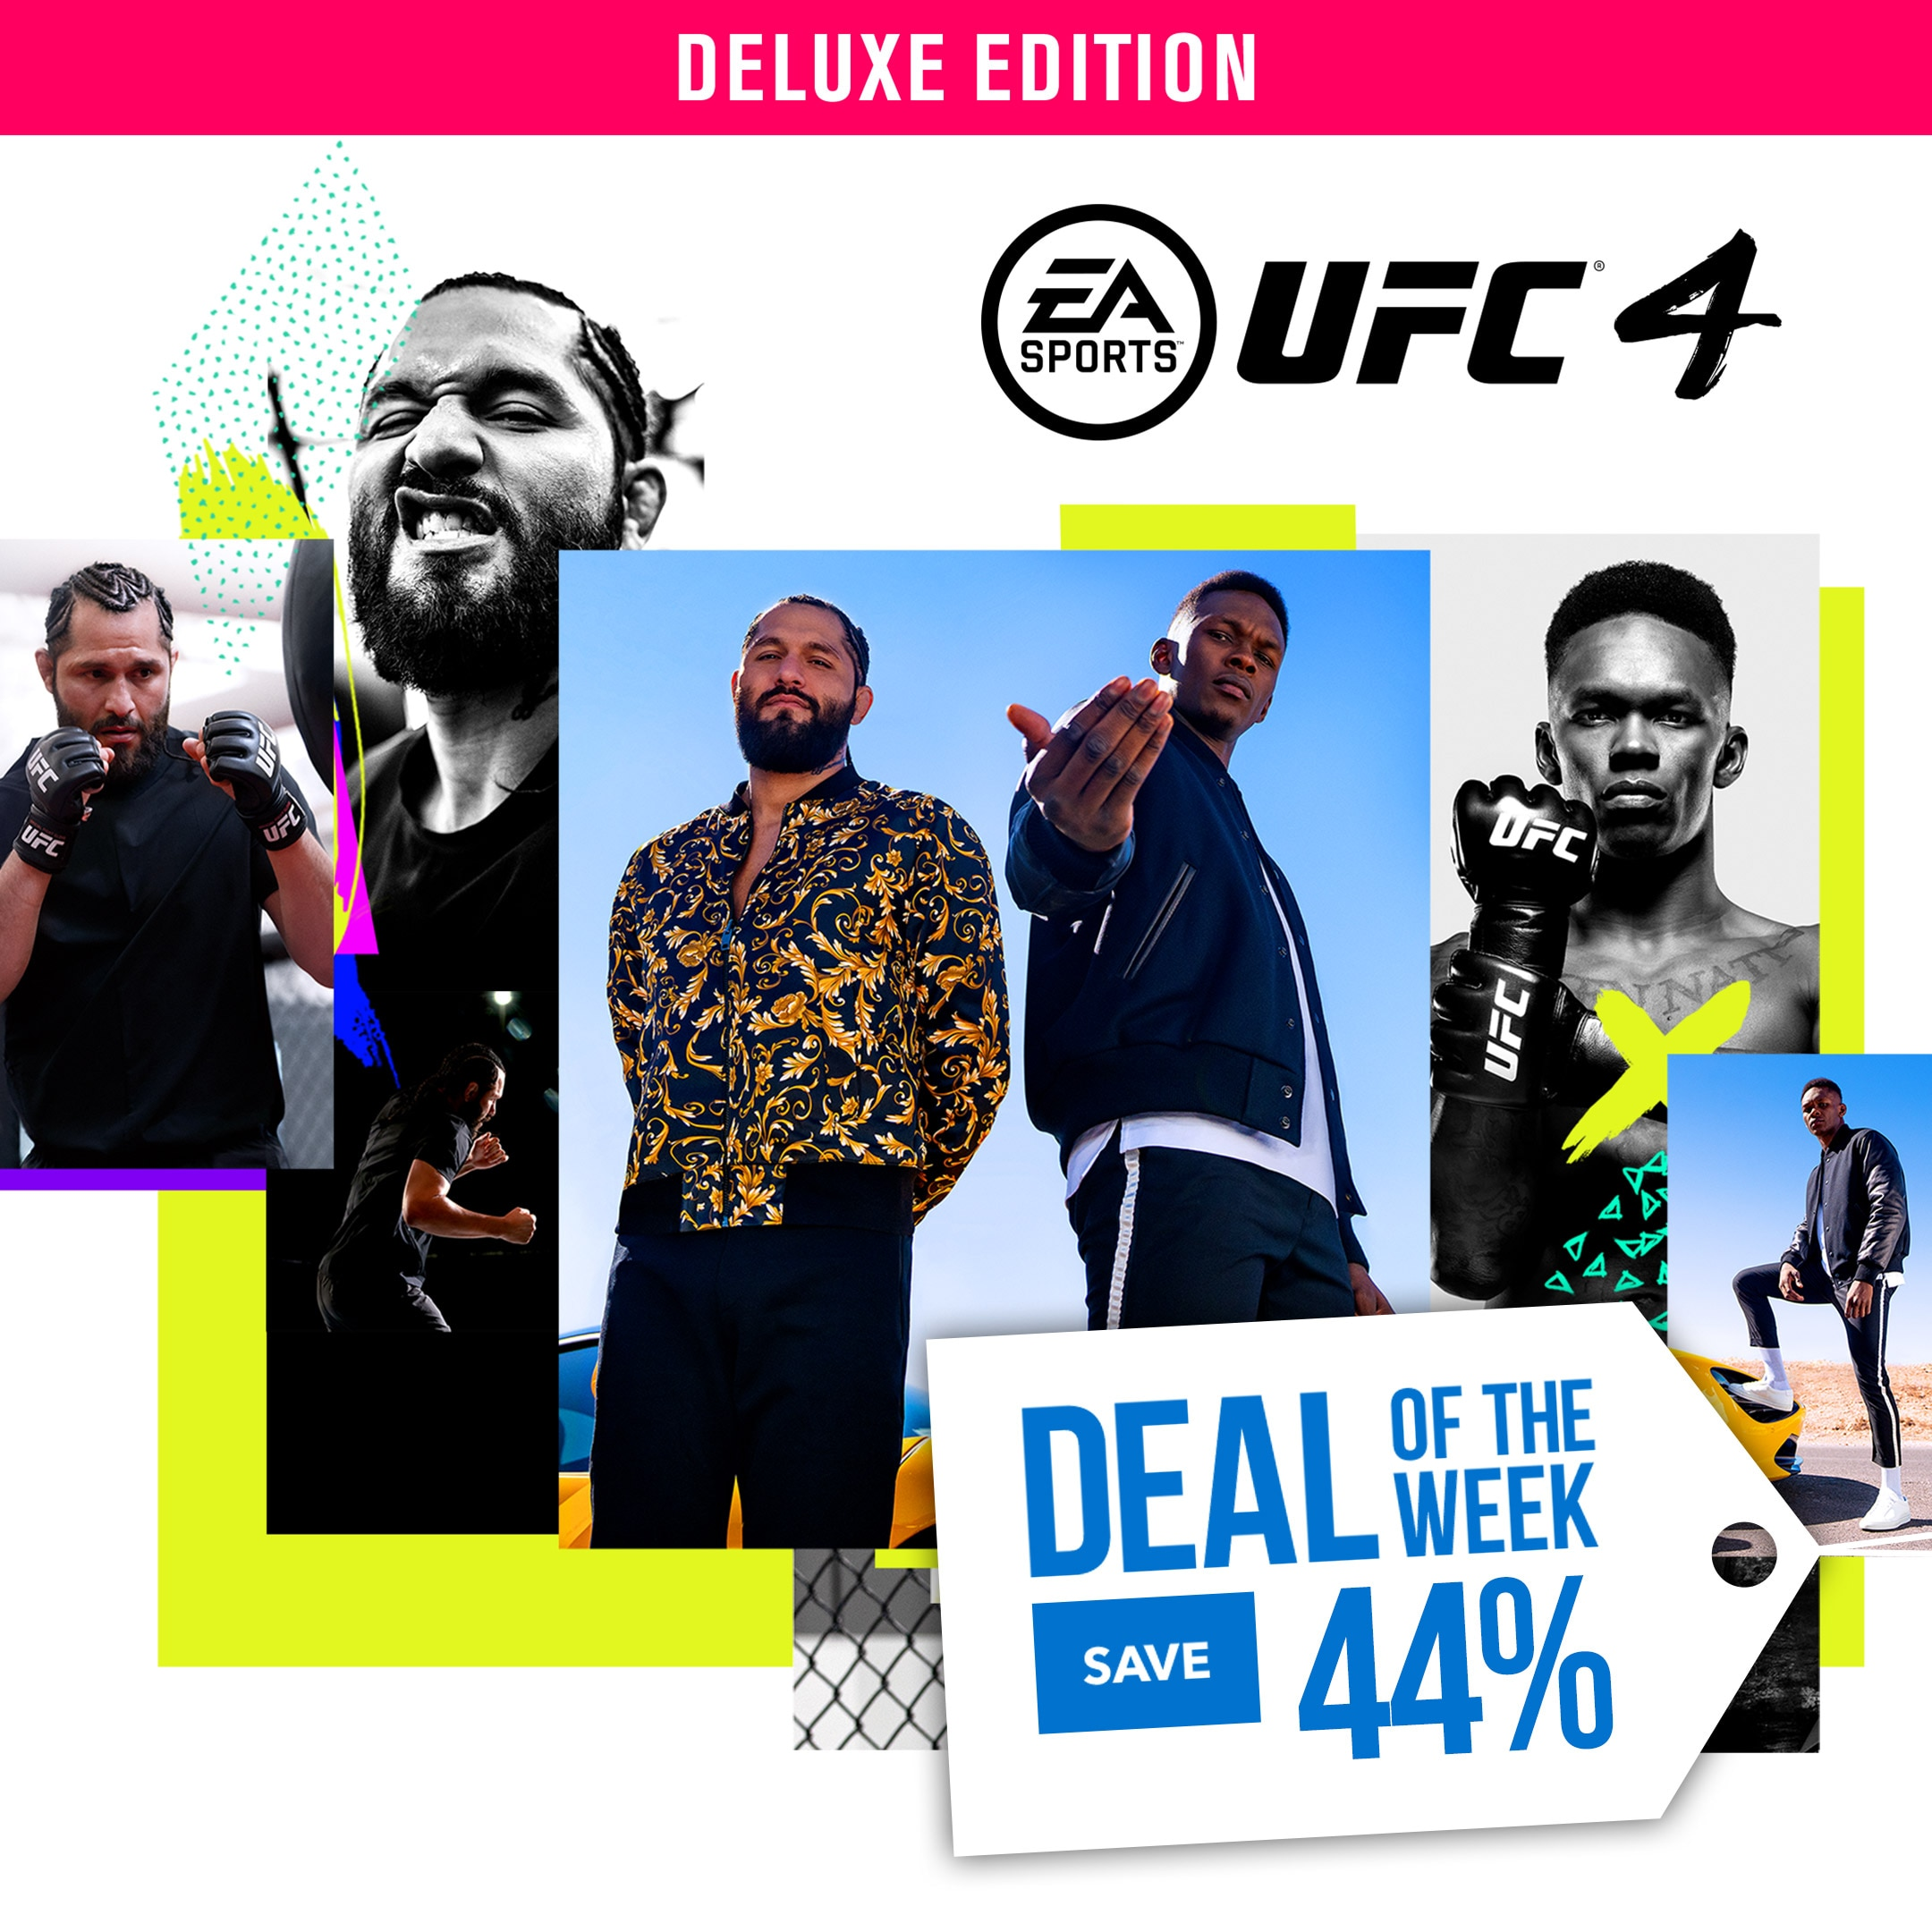 [PROMO] Deal Of The Week - UFC 4 Deluxe Edition